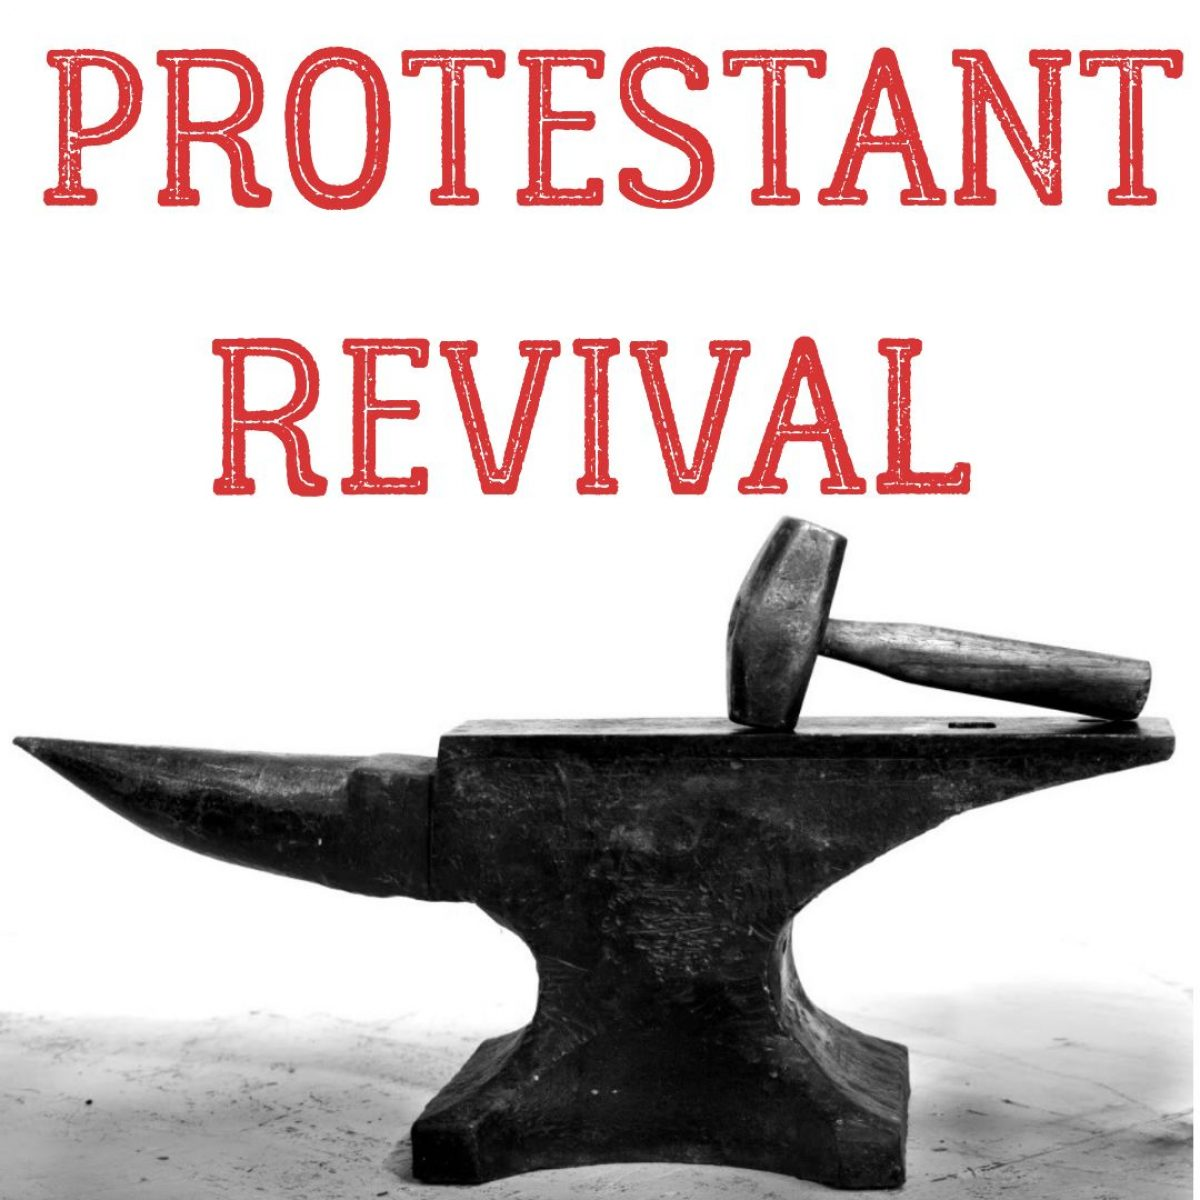 Protestant Revival